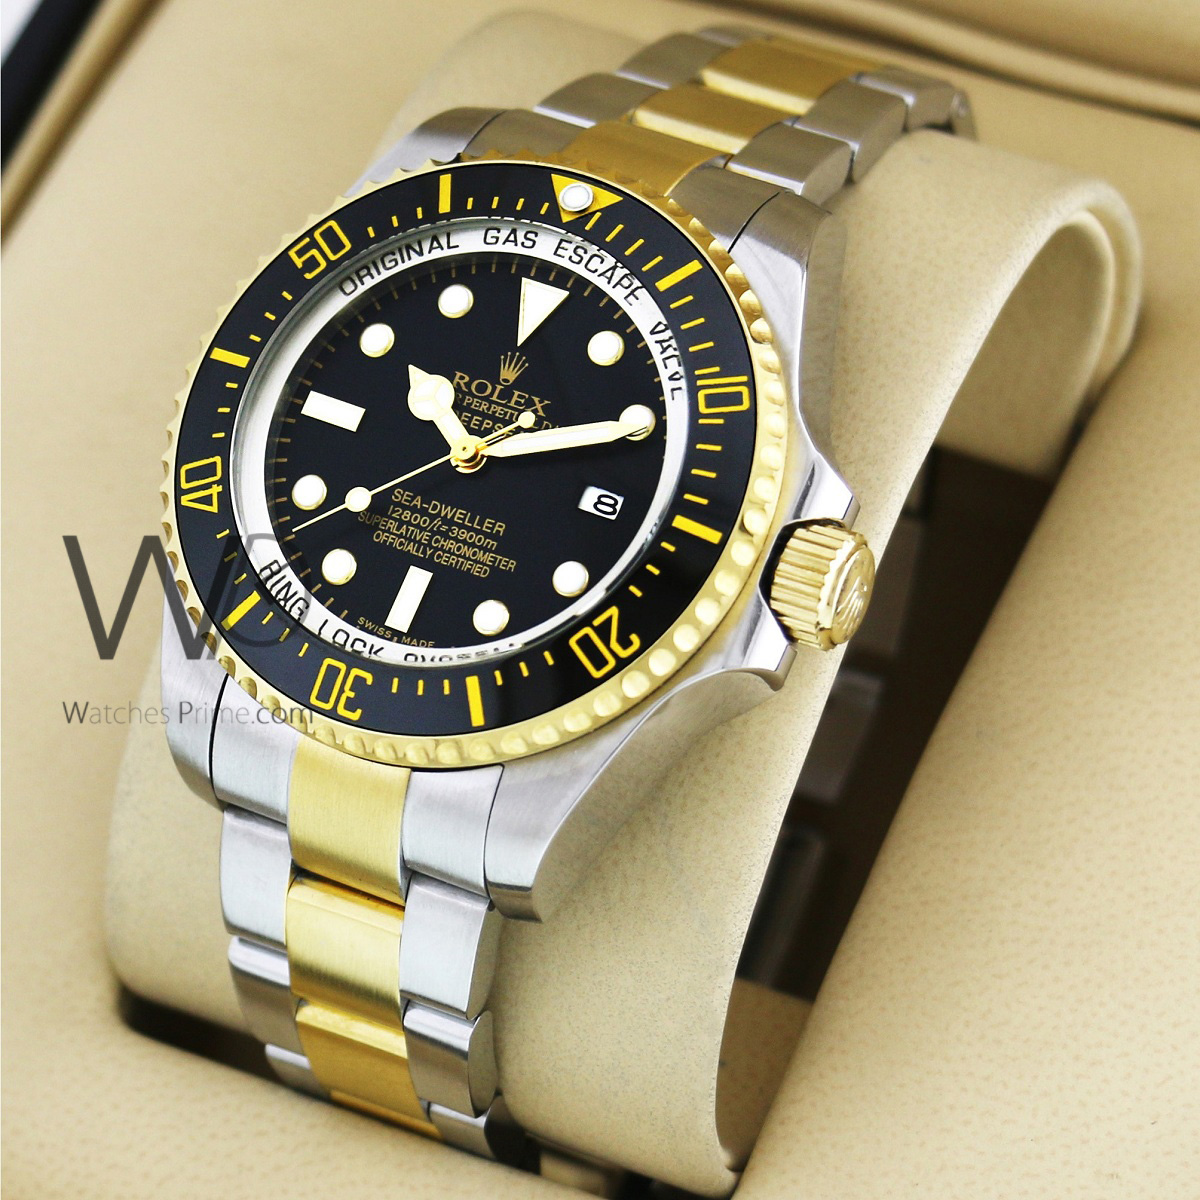 2c545edf9 ... CERAMIC BEZEL WATCH BLACK WITH STAINLESS STEEL SILVER&GOLD BELT. SKU:  309. Roll over image to zoom in